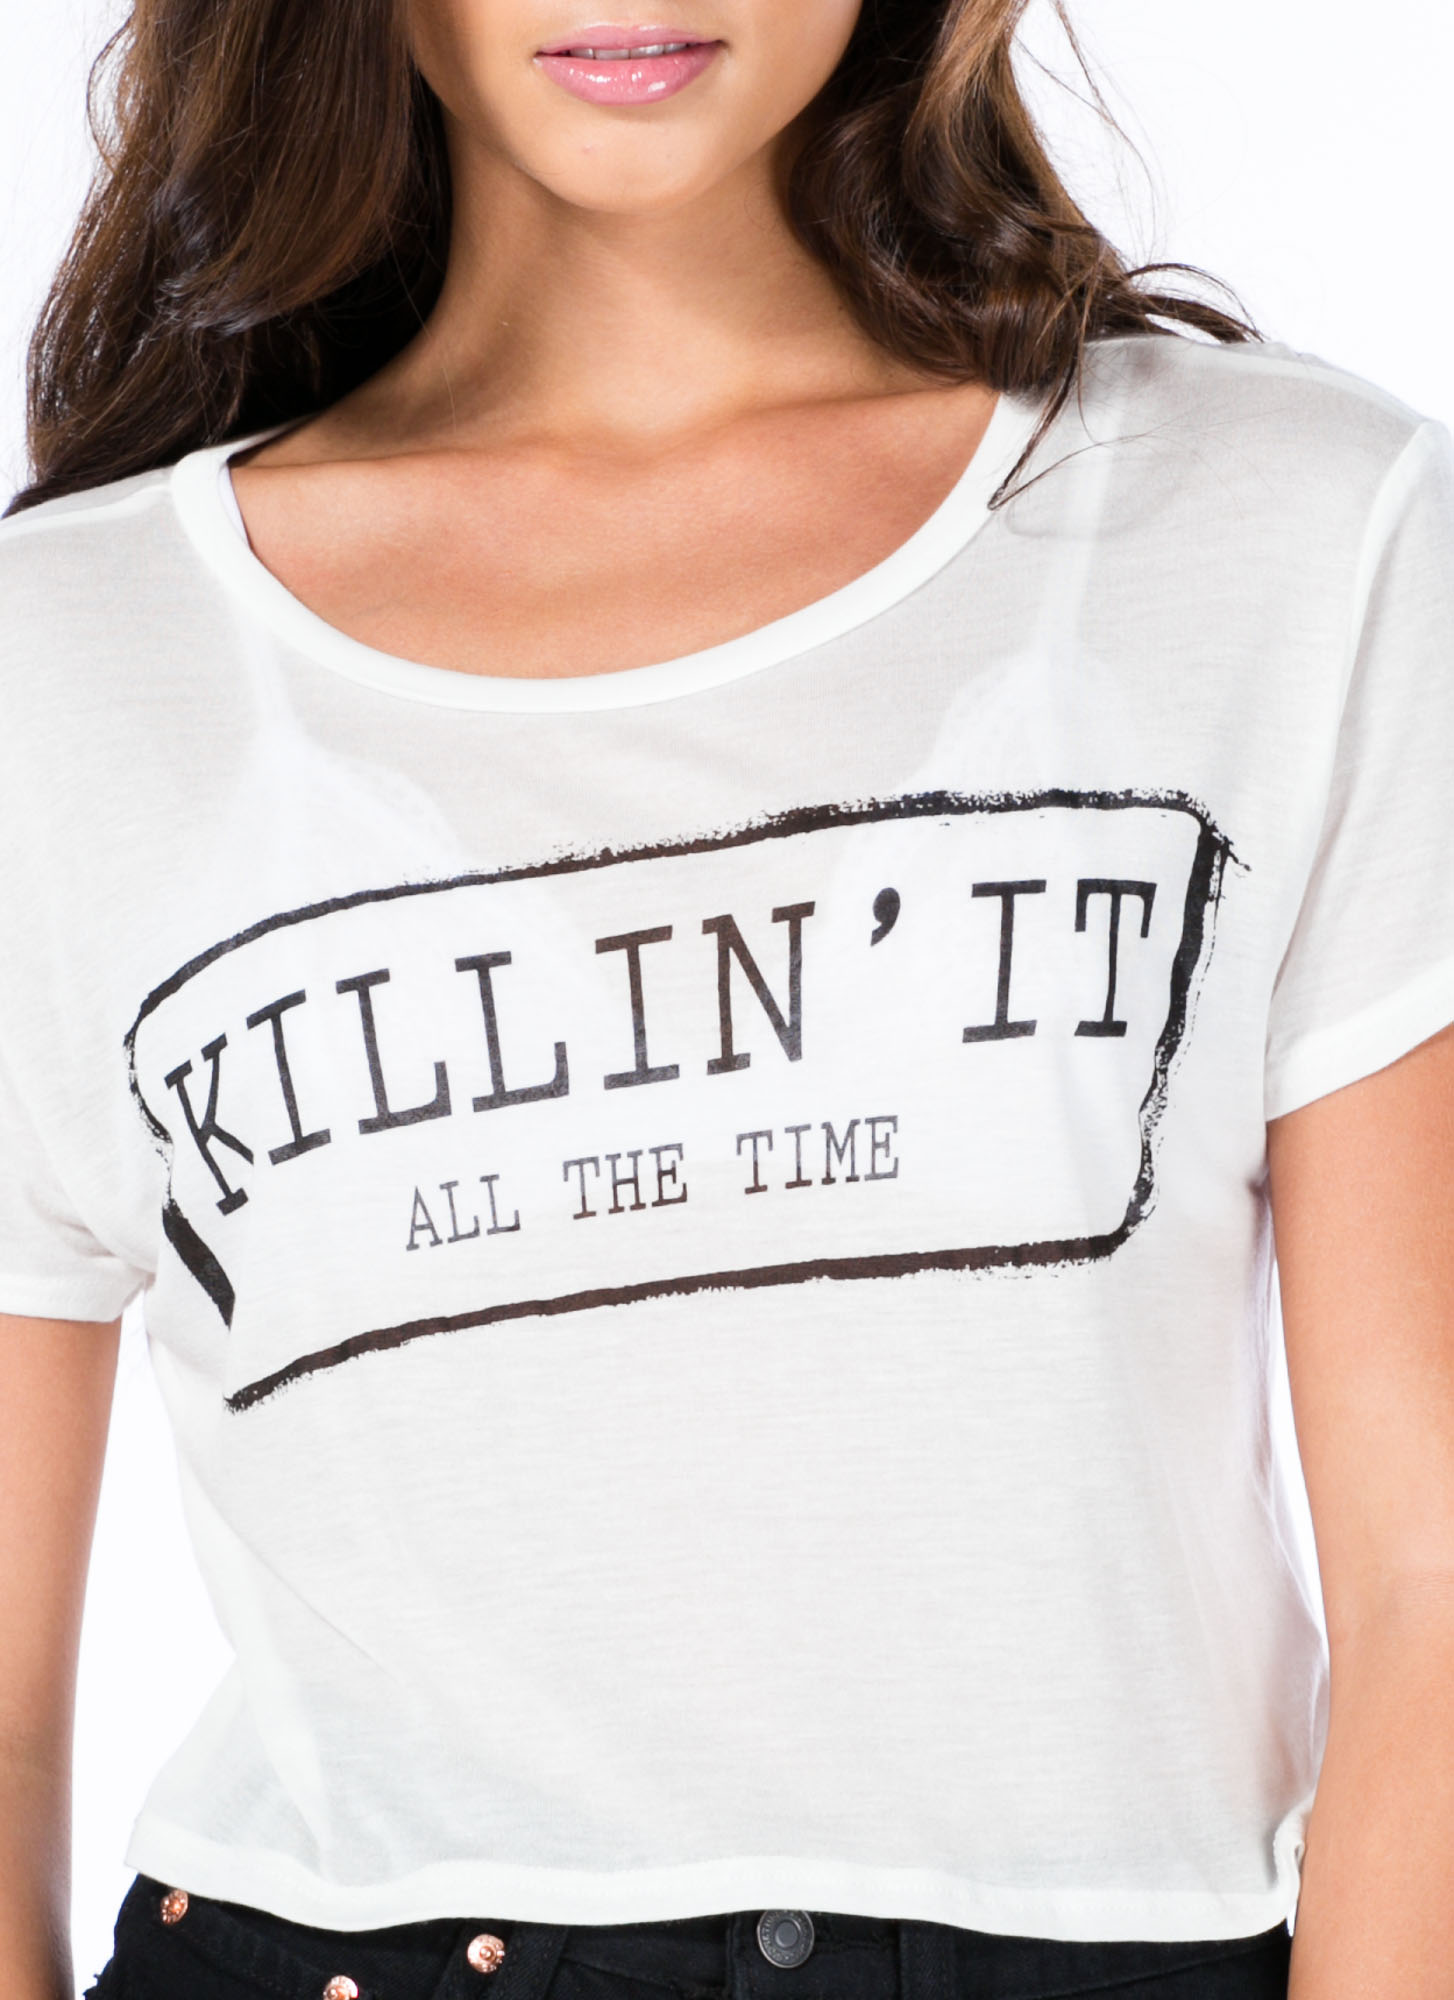 Killin' It All The Time Graphic Tee WHITE